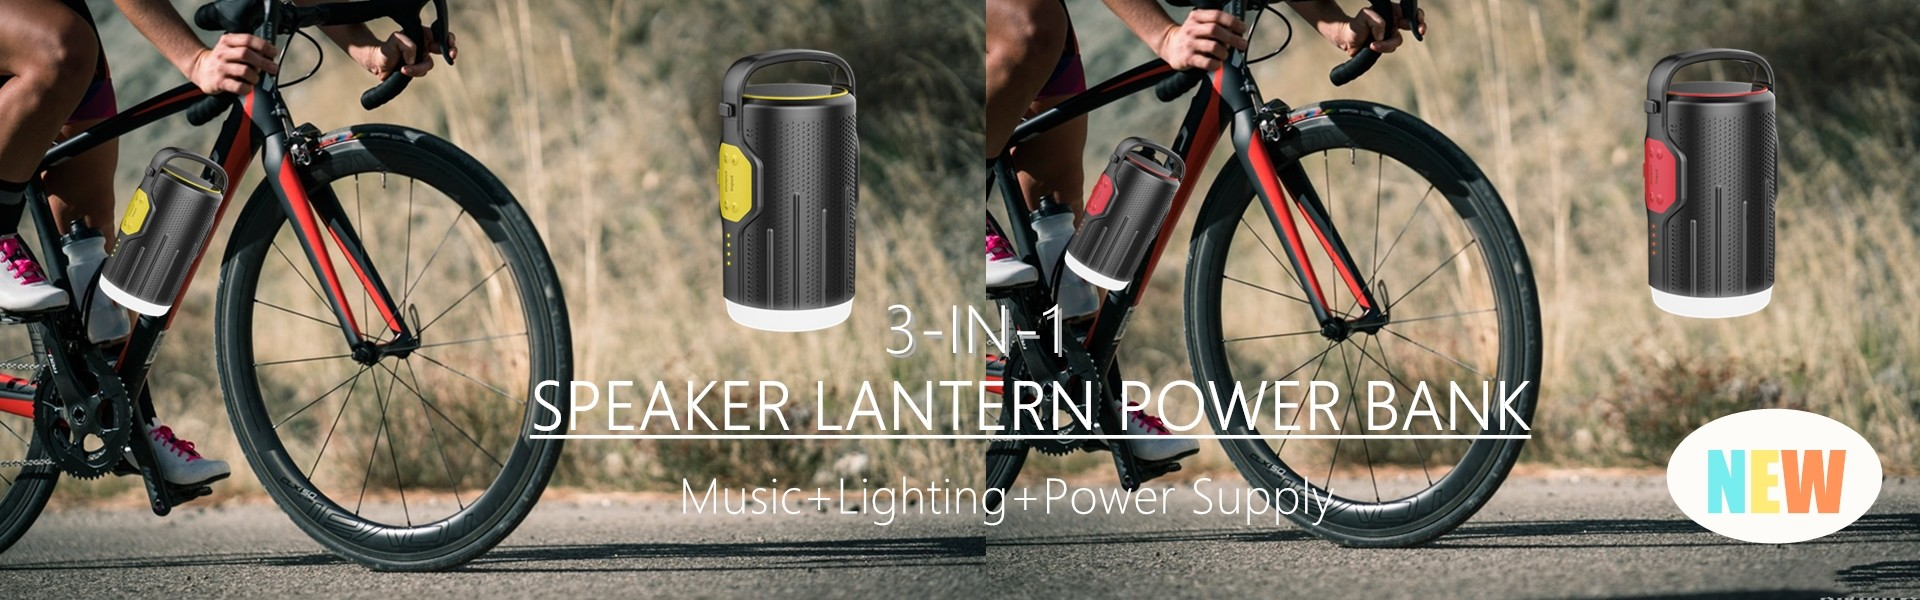 3 in 1 Camping Lantern Bluetooth Speaker with Power Bank 10400mAh